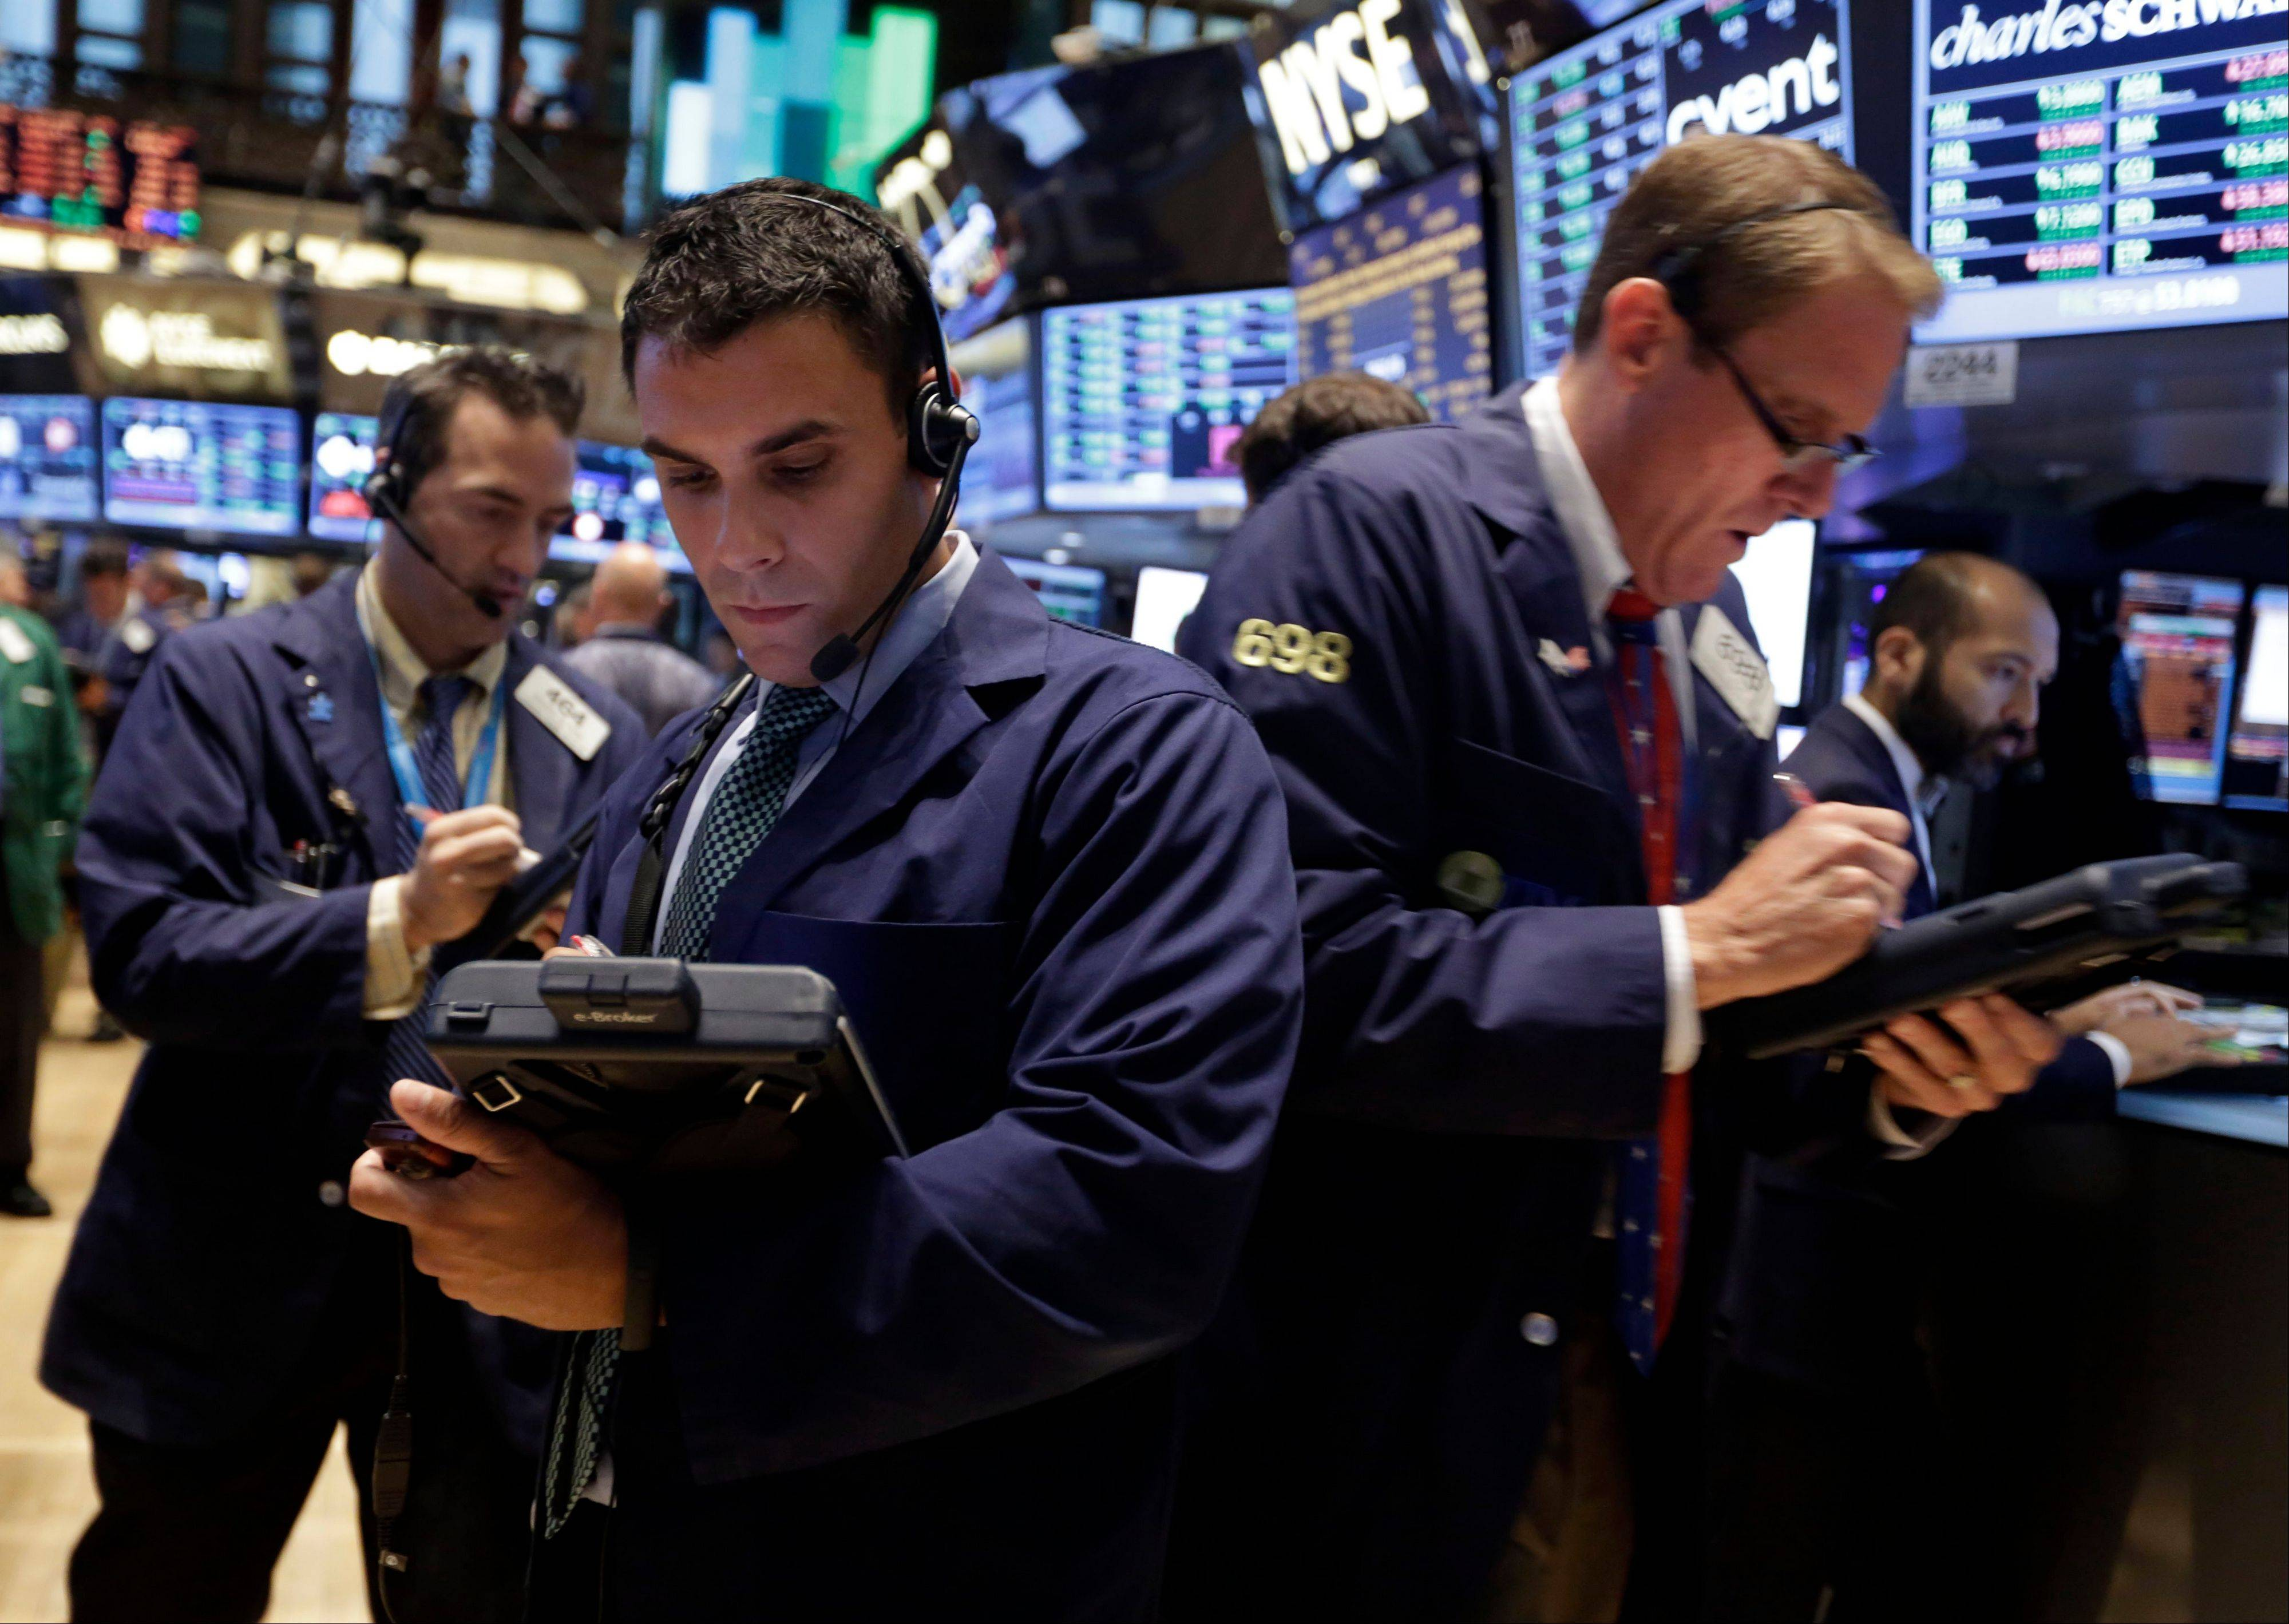 ASSOCIATED PRESS U.S. stocks rose, sending the Standard & Poor�s 500 Index to a five-week high, after Lawrence Summers withdrew his bid to be Federal Reserve chairman and tensions over dealing with Syria�s chemical weapons eased.